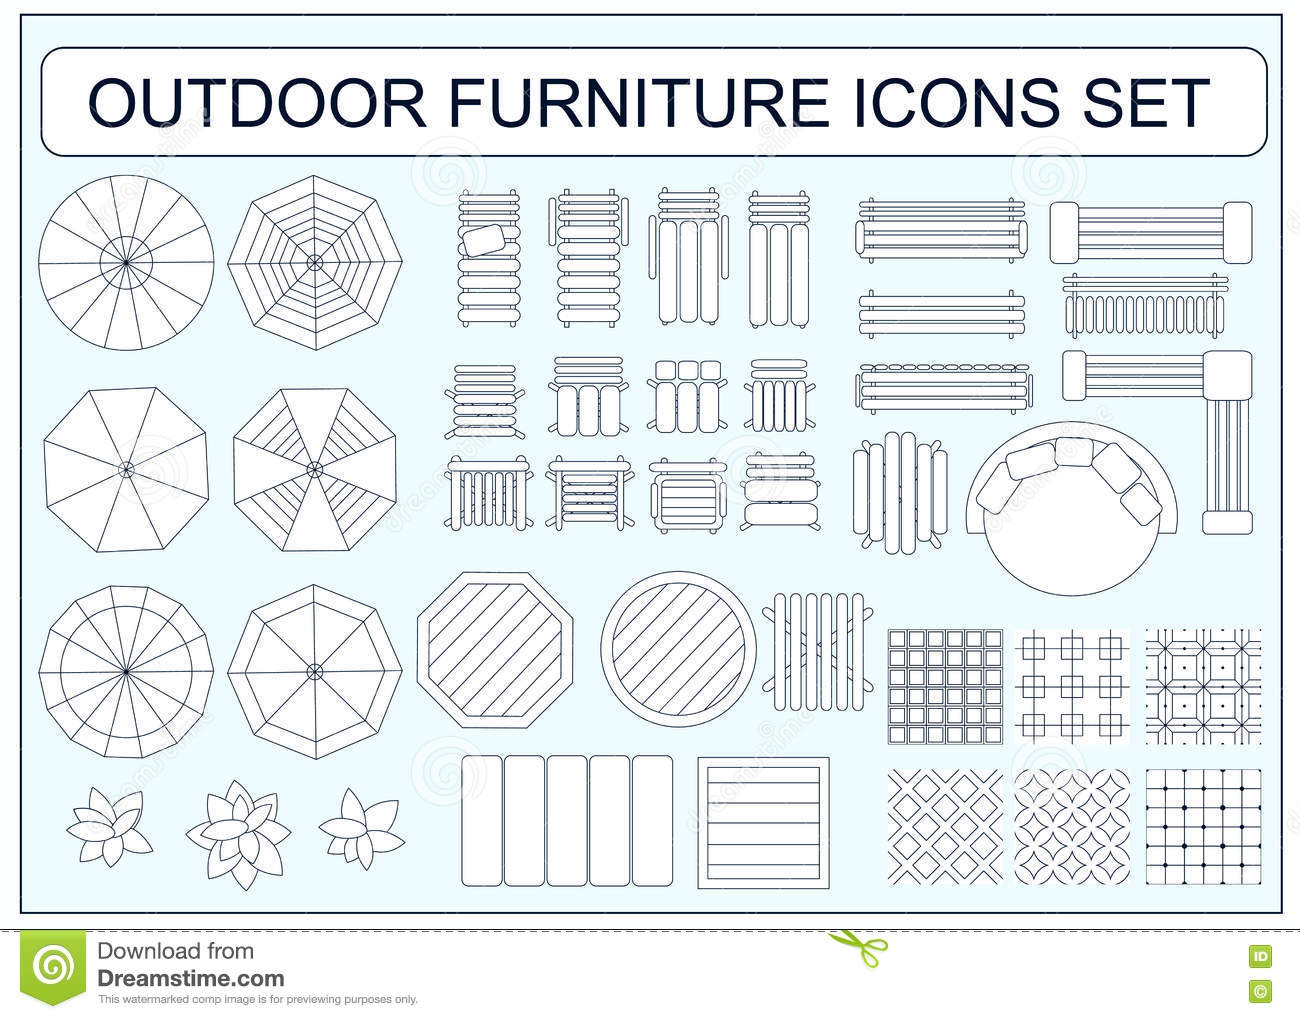 Furniture Design Elements set of simple outdoor furniture vector icons as design elements